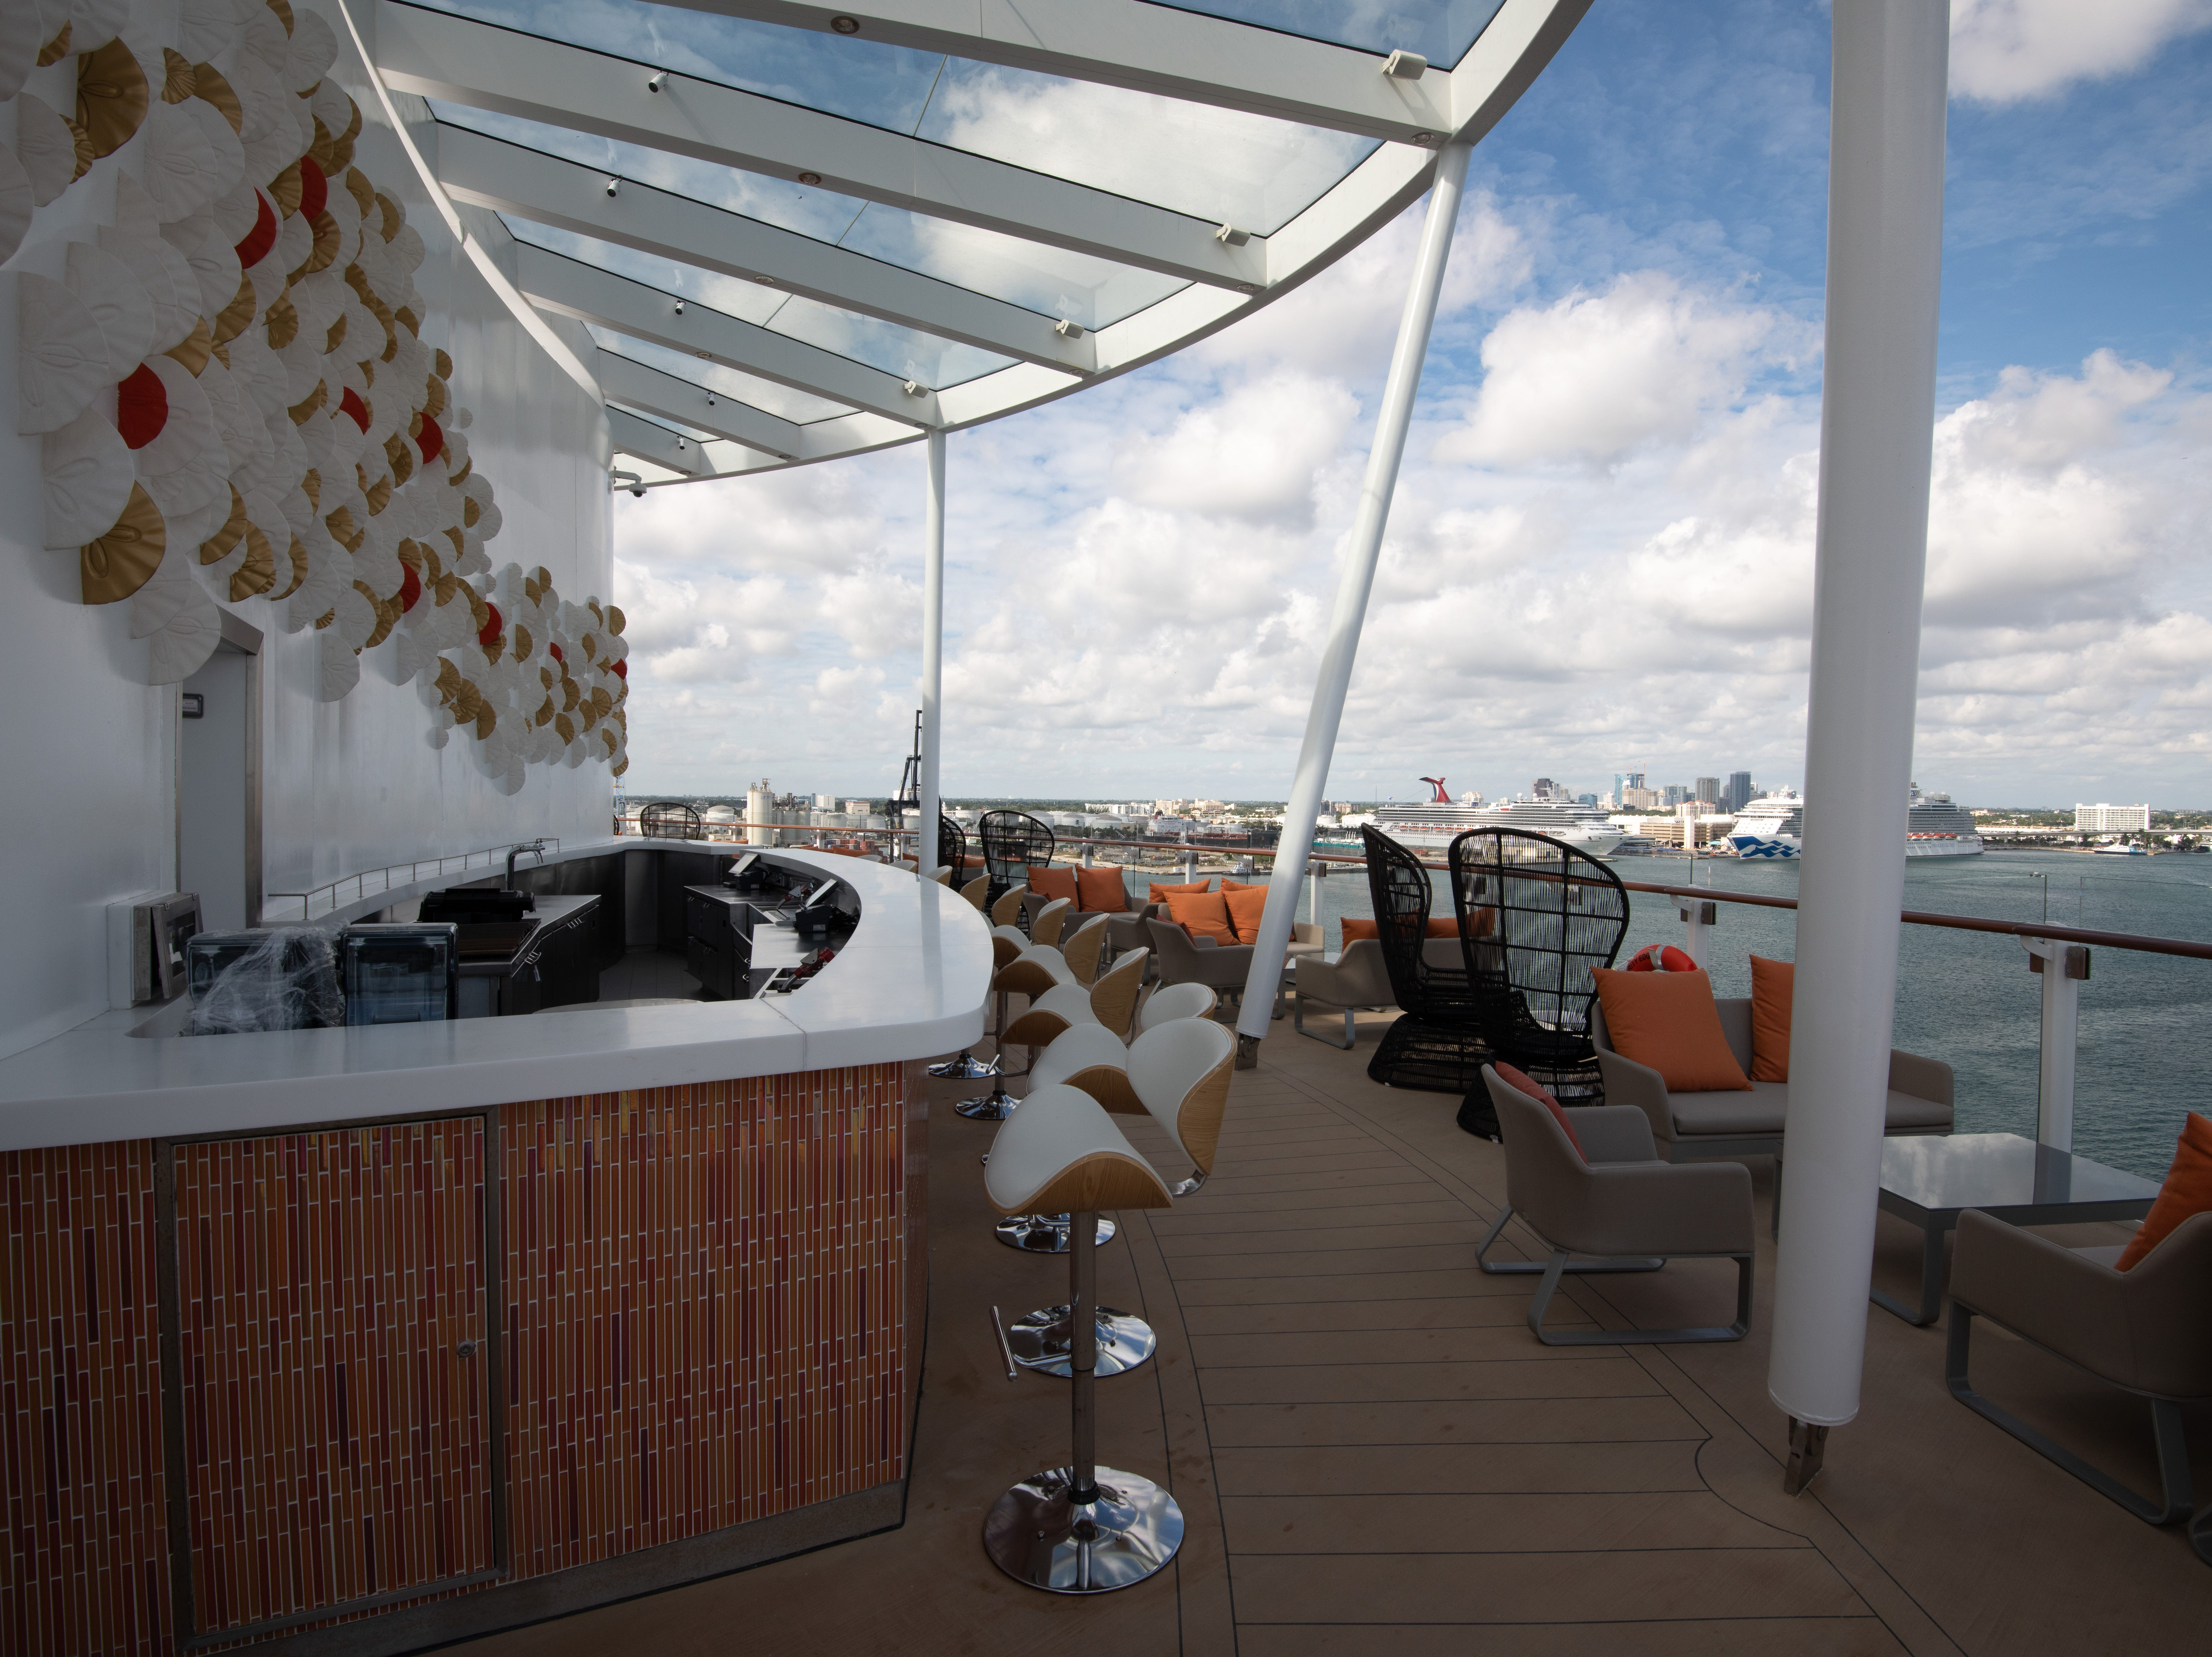 Like other Celebrity ships, Celebrity Edge features a Sunset Bar overlooking the back of the vessel.